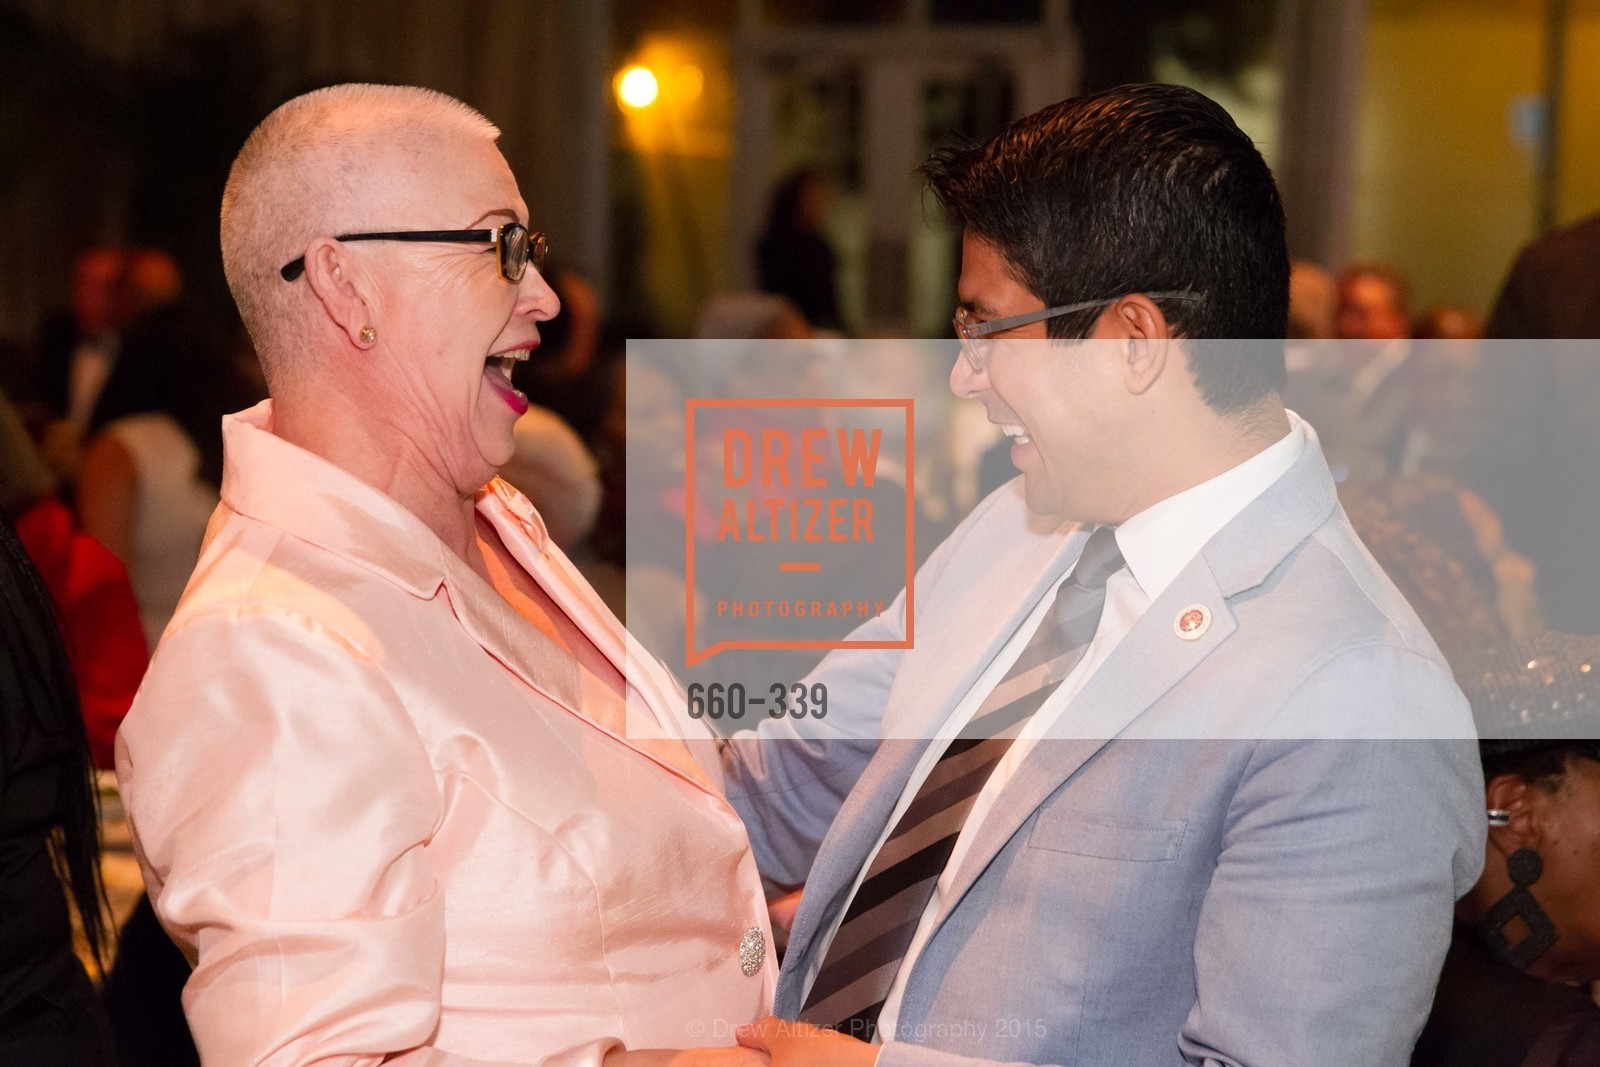 Beatrice Cardenas Duncan, Carlos Menchaca, University of San Francisco Alumni Awards Gala 2015, University of San Francisco, October 2nd, 2015,Drew Altizer, Drew Altizer Photography, full-service agency, private events, San Francisco photographer, photographer california